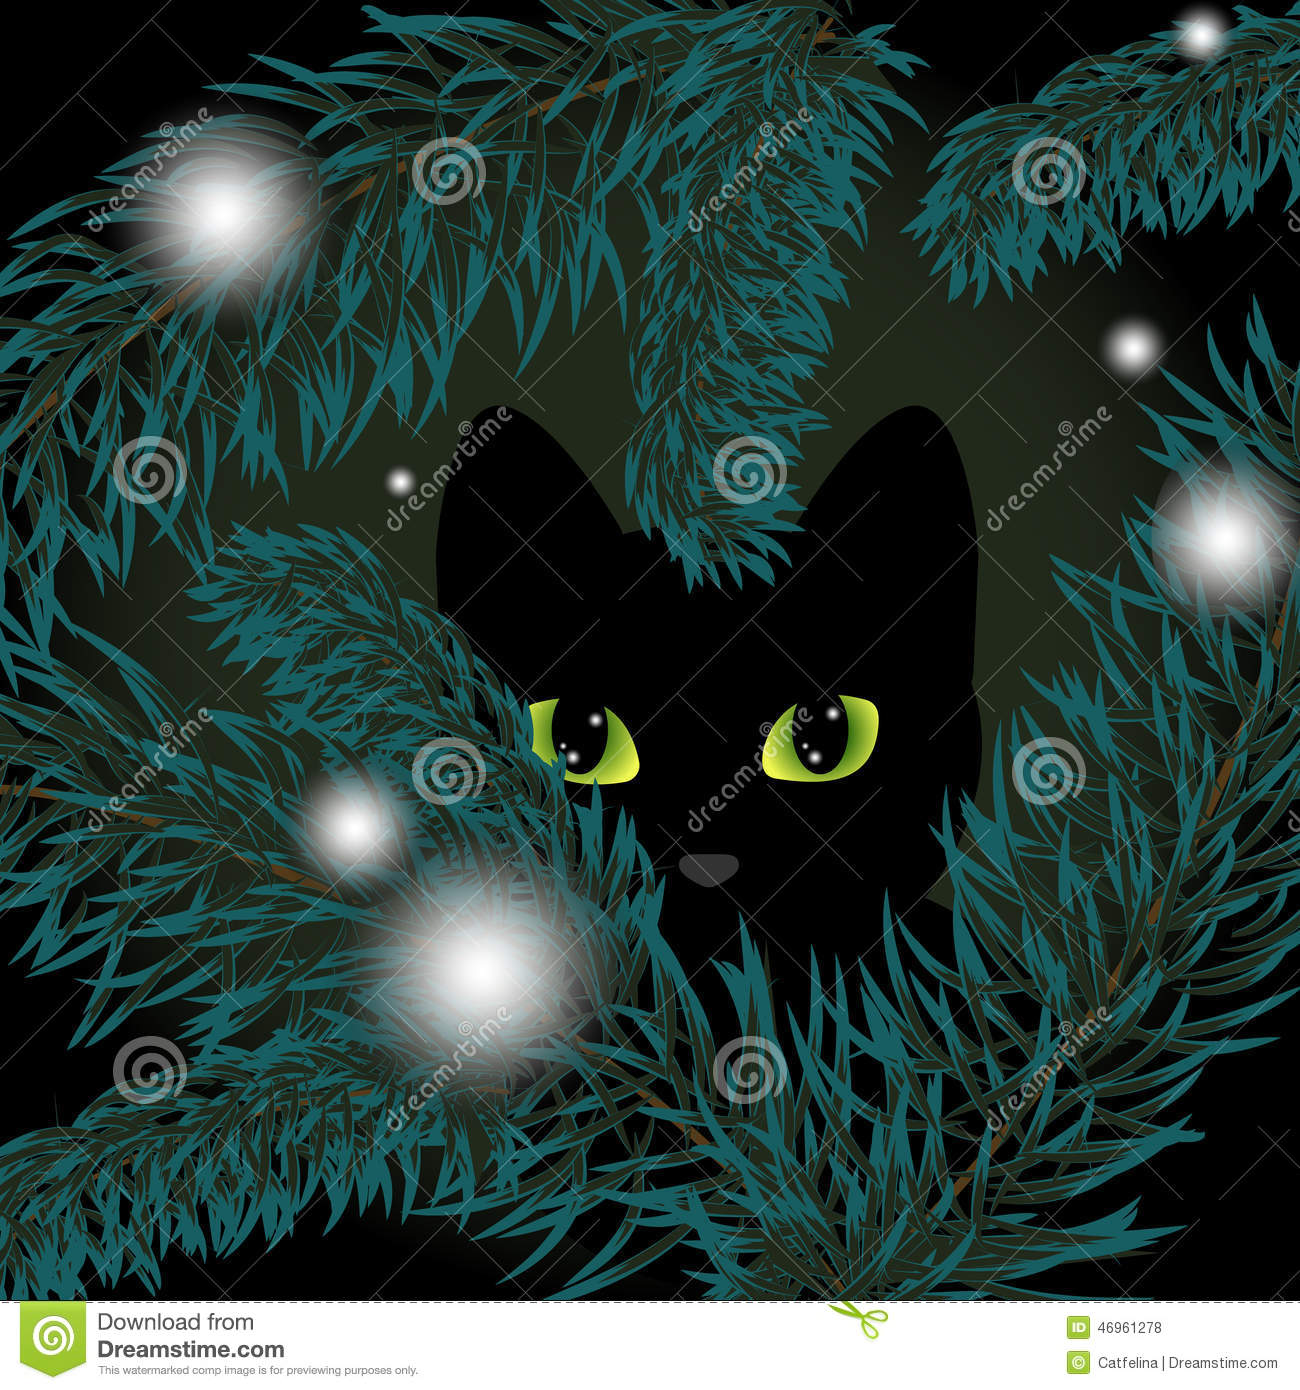 Christmas Tree Made Of Black Cats: Black Cat In A Christmas Tree Stock Vector